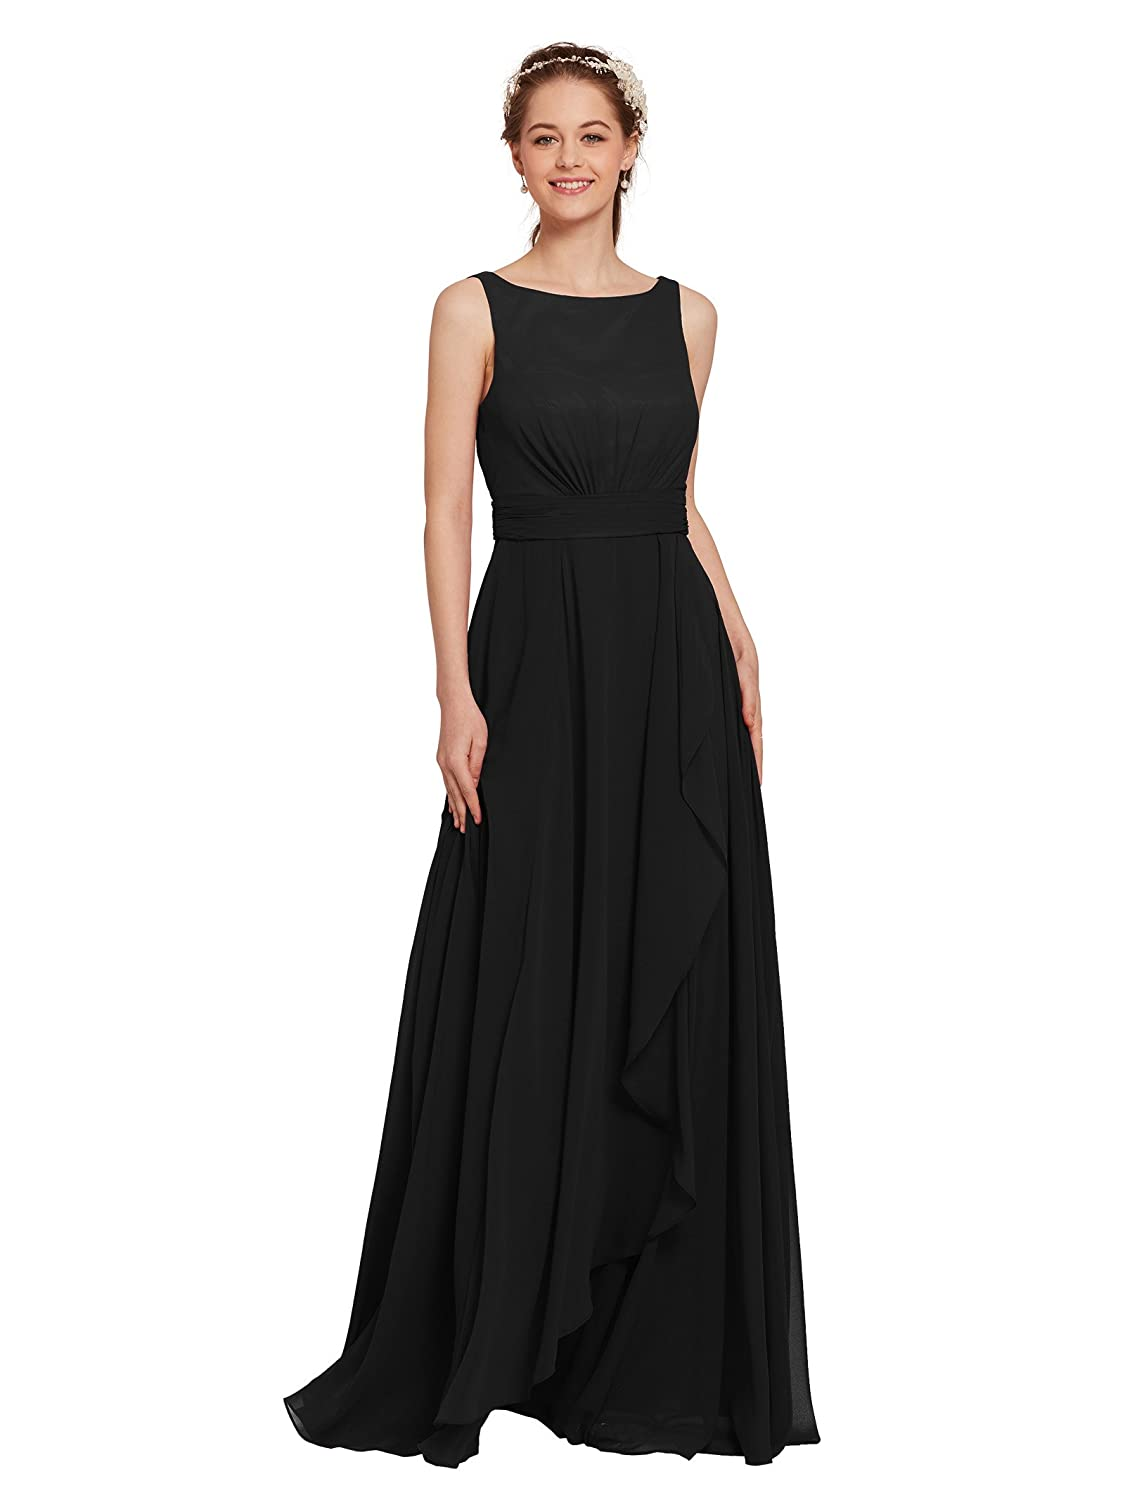 AW Bridal Long Bridesmaid Dresses Chiffon Formal Dresses A-Line Evening  Dresses for Women at Amazon Women s Clothing store  70f1749e1